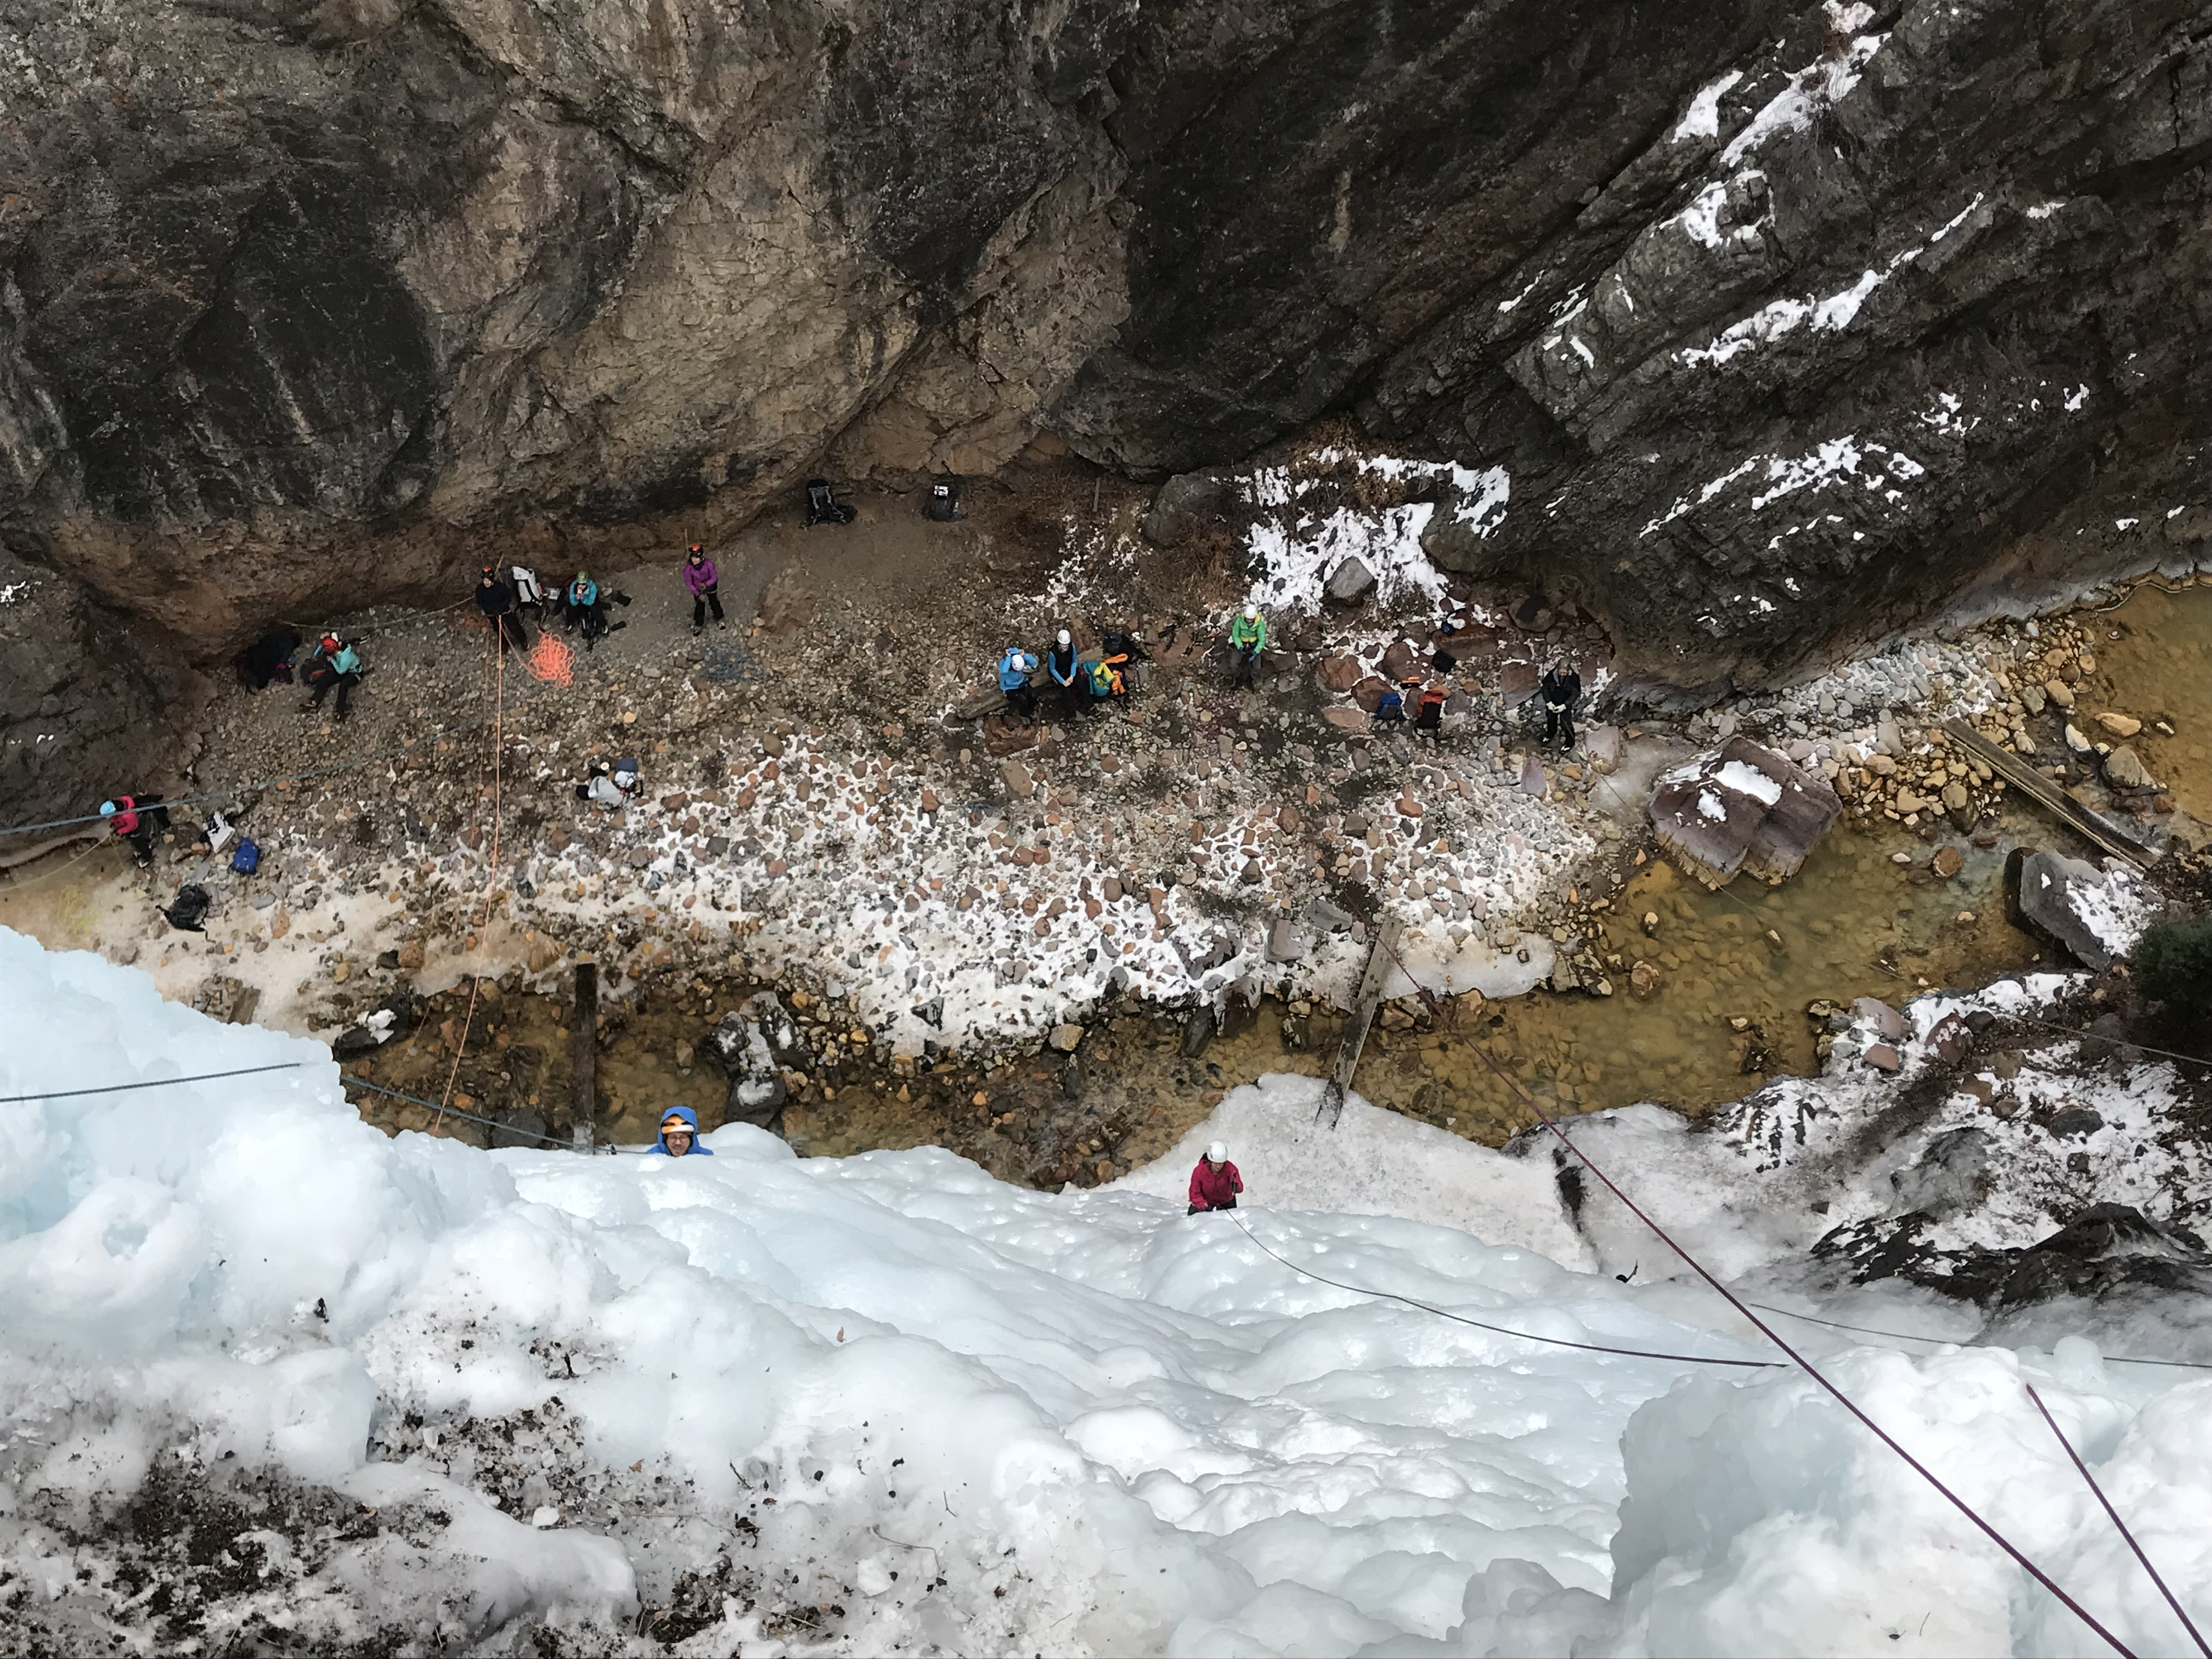 The Schoolroom, Ouray Ice Park, Colorado. Belaying top rope climbers from the other side of the river--Out of the way of the impact zone. ©Karen Bockel